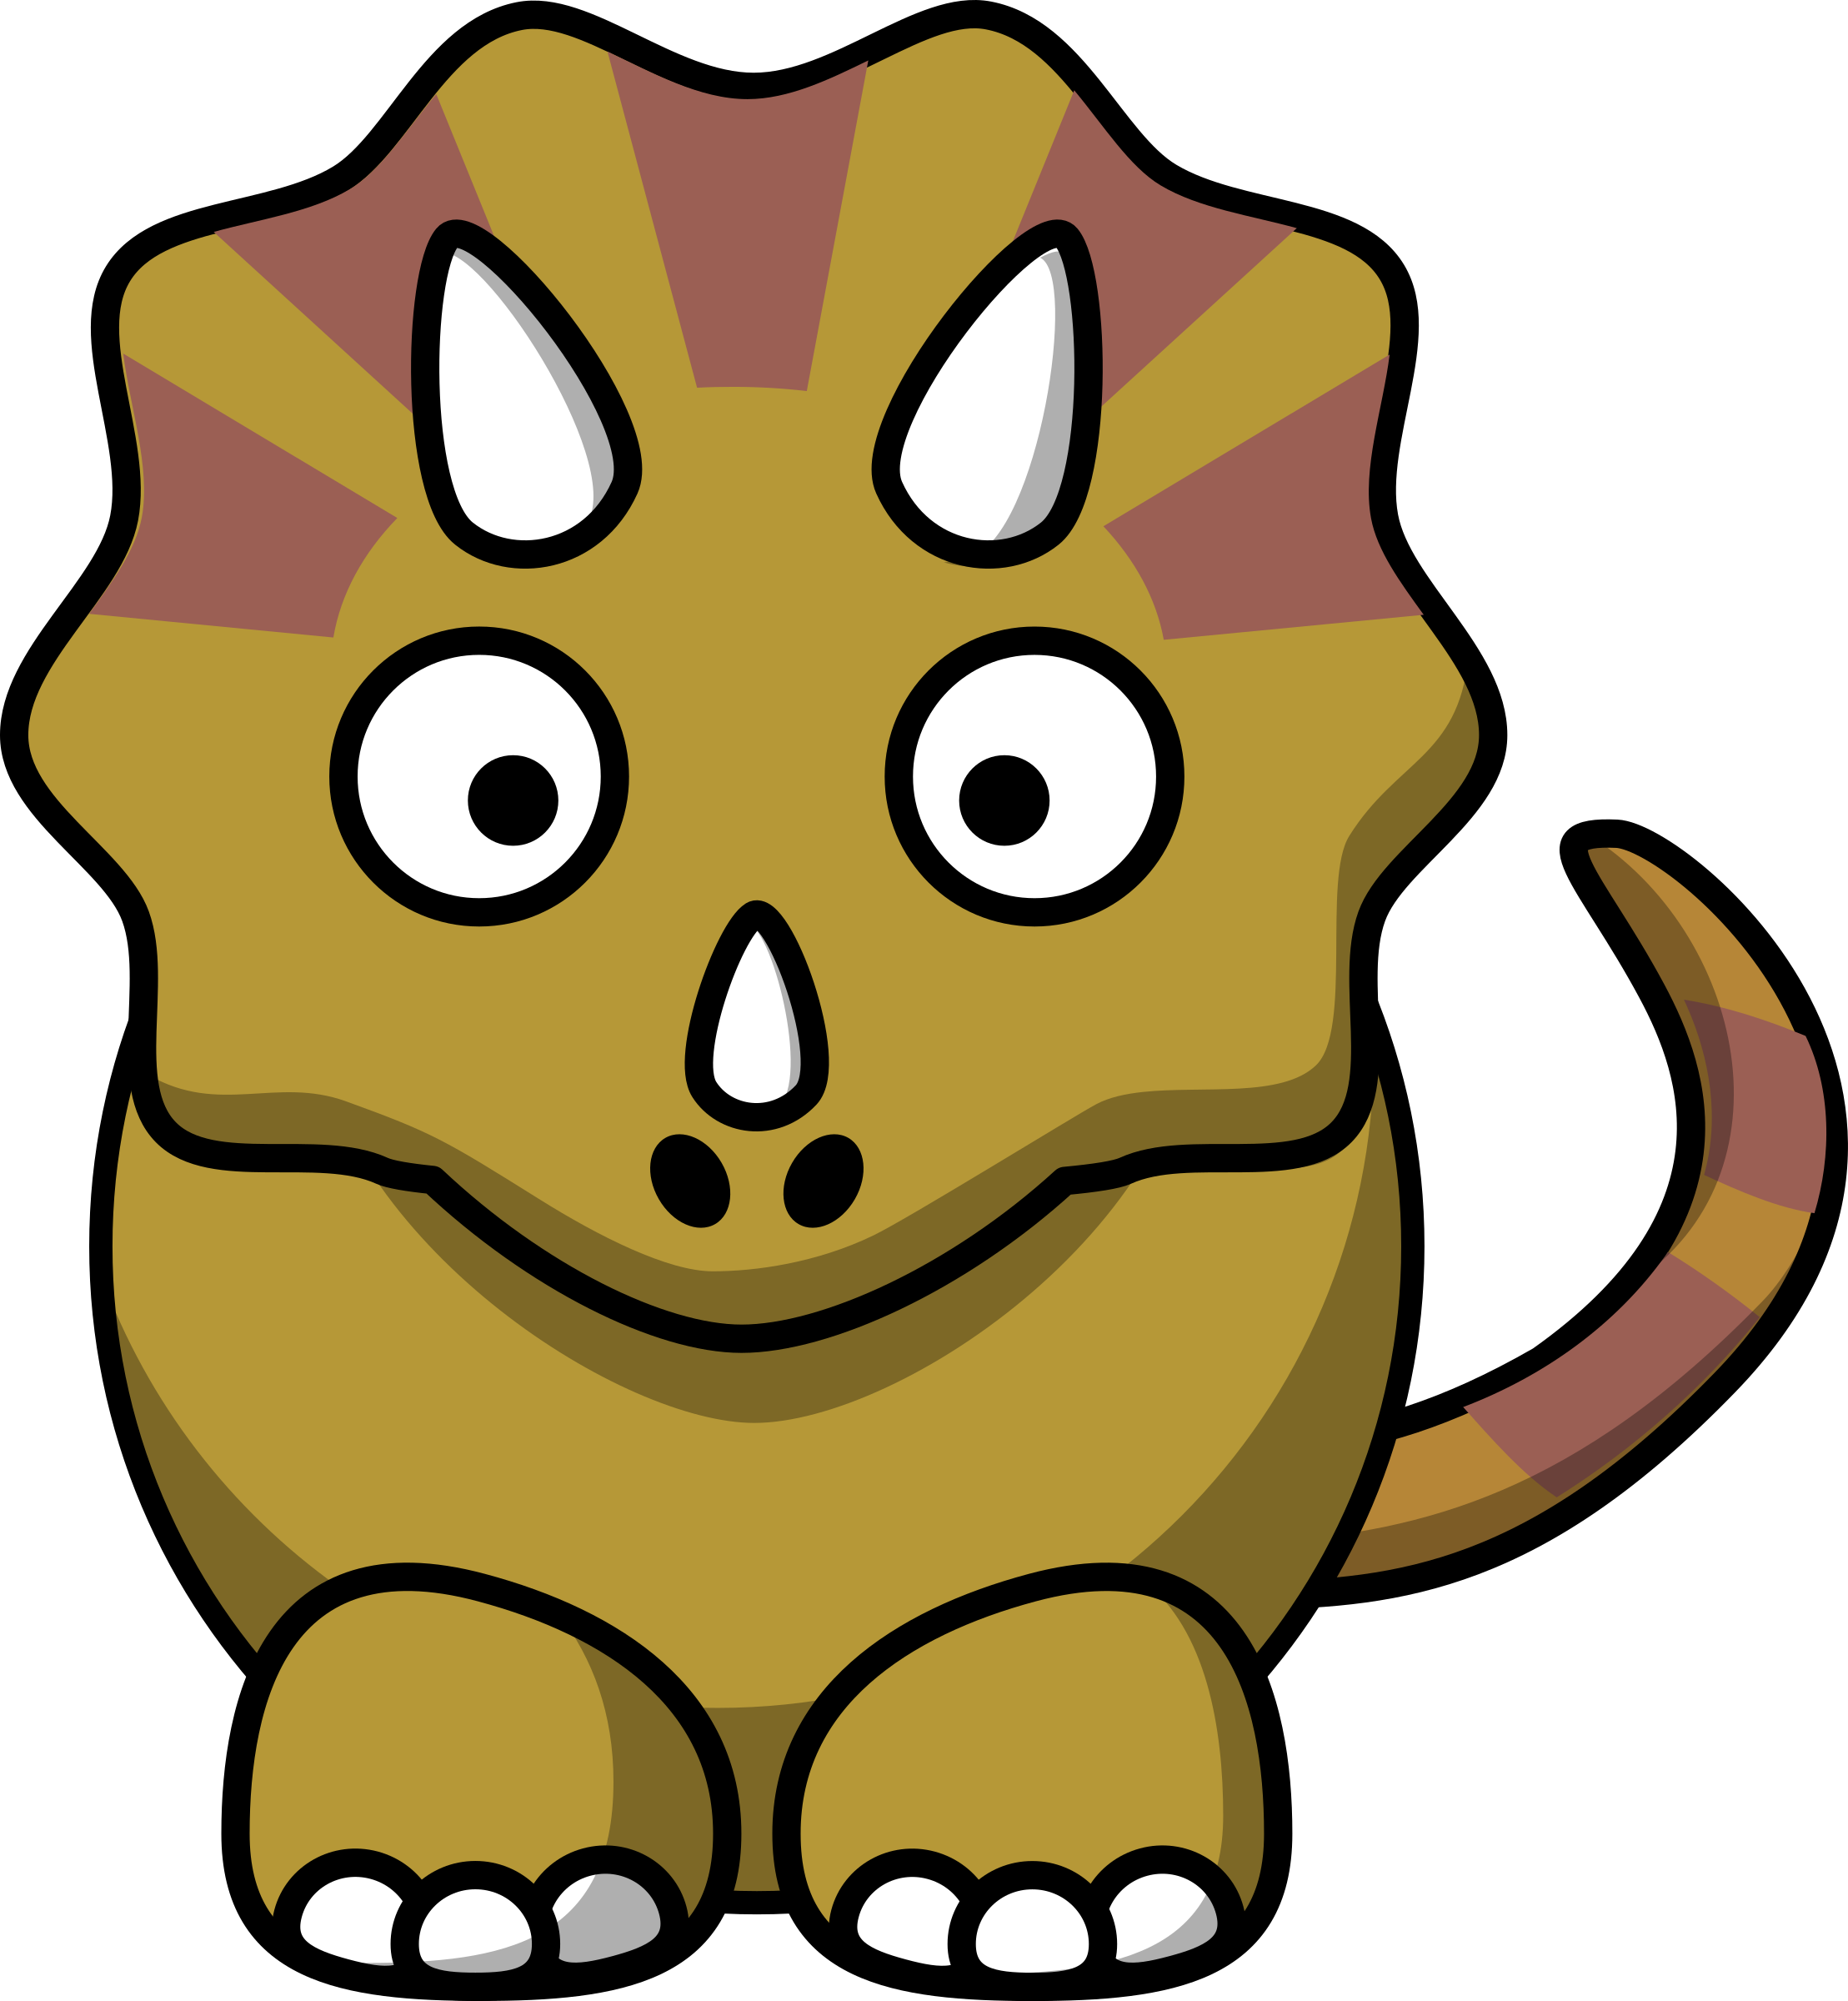 Stripy triceratops by anarres